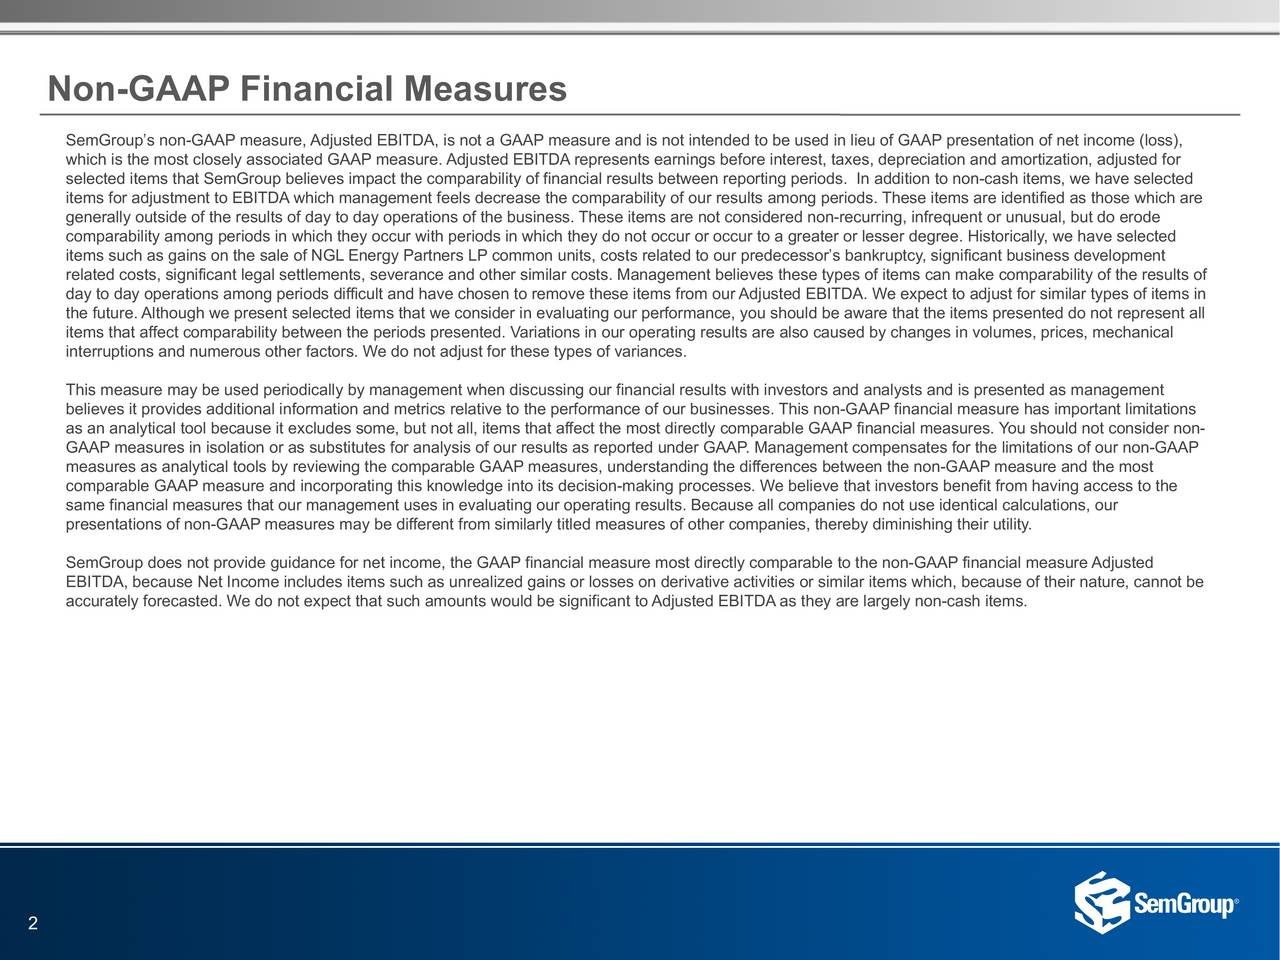 SemGroups non-GAAP measure, Adjusted EBITDA, is not a GAAP measure and is not intended to be used in lieu of GAAP presentation of net income (loss), which is the most closely associated GAAP measure. Adjusted EBITDA represents earnings before interest, taxes, depreciation and amortization, adjusted for selected items that SemGroup believes impact the comparability of financial results between reporting periods. In addition to non-cash items, we have selected items for adjustment to EBITDA which management feels decrease the comparability of our results among periods. These items are identified as those which are generally outside of the results of day to day operations of the business. These items are not considered non-recurring, infrequent or unusual, but do erode comparability among periods in which they occur with periods in which they do not occur or occur to a greater or lesser degree. Historically, we have selected items such as gains on the sale of NGL Energy Partners LP common units, costs related to our predecessors bankruptcy, significant business development related costs, significant legal settlements, severance and other similar costs. Management believes these types of items can make comparability of the results of day to day operations among periods difficult and have chosen to remove these items from our Adjusted EBITDA. We expect to adjust for similar types of items in the future. Although we present selected items that we consider in evaluating our performance, you should be aware that the items presented do not represent all items that affect comparability between the periods presented. Variations in our operating results are also caused by changes in volumes, prices, mechanical interruptions and numerous other factors. We do not adjust for these types of variances. This measure may be used periodically by management when discussing our financial results with investors and analysts and is presented as management believes it provides additional in